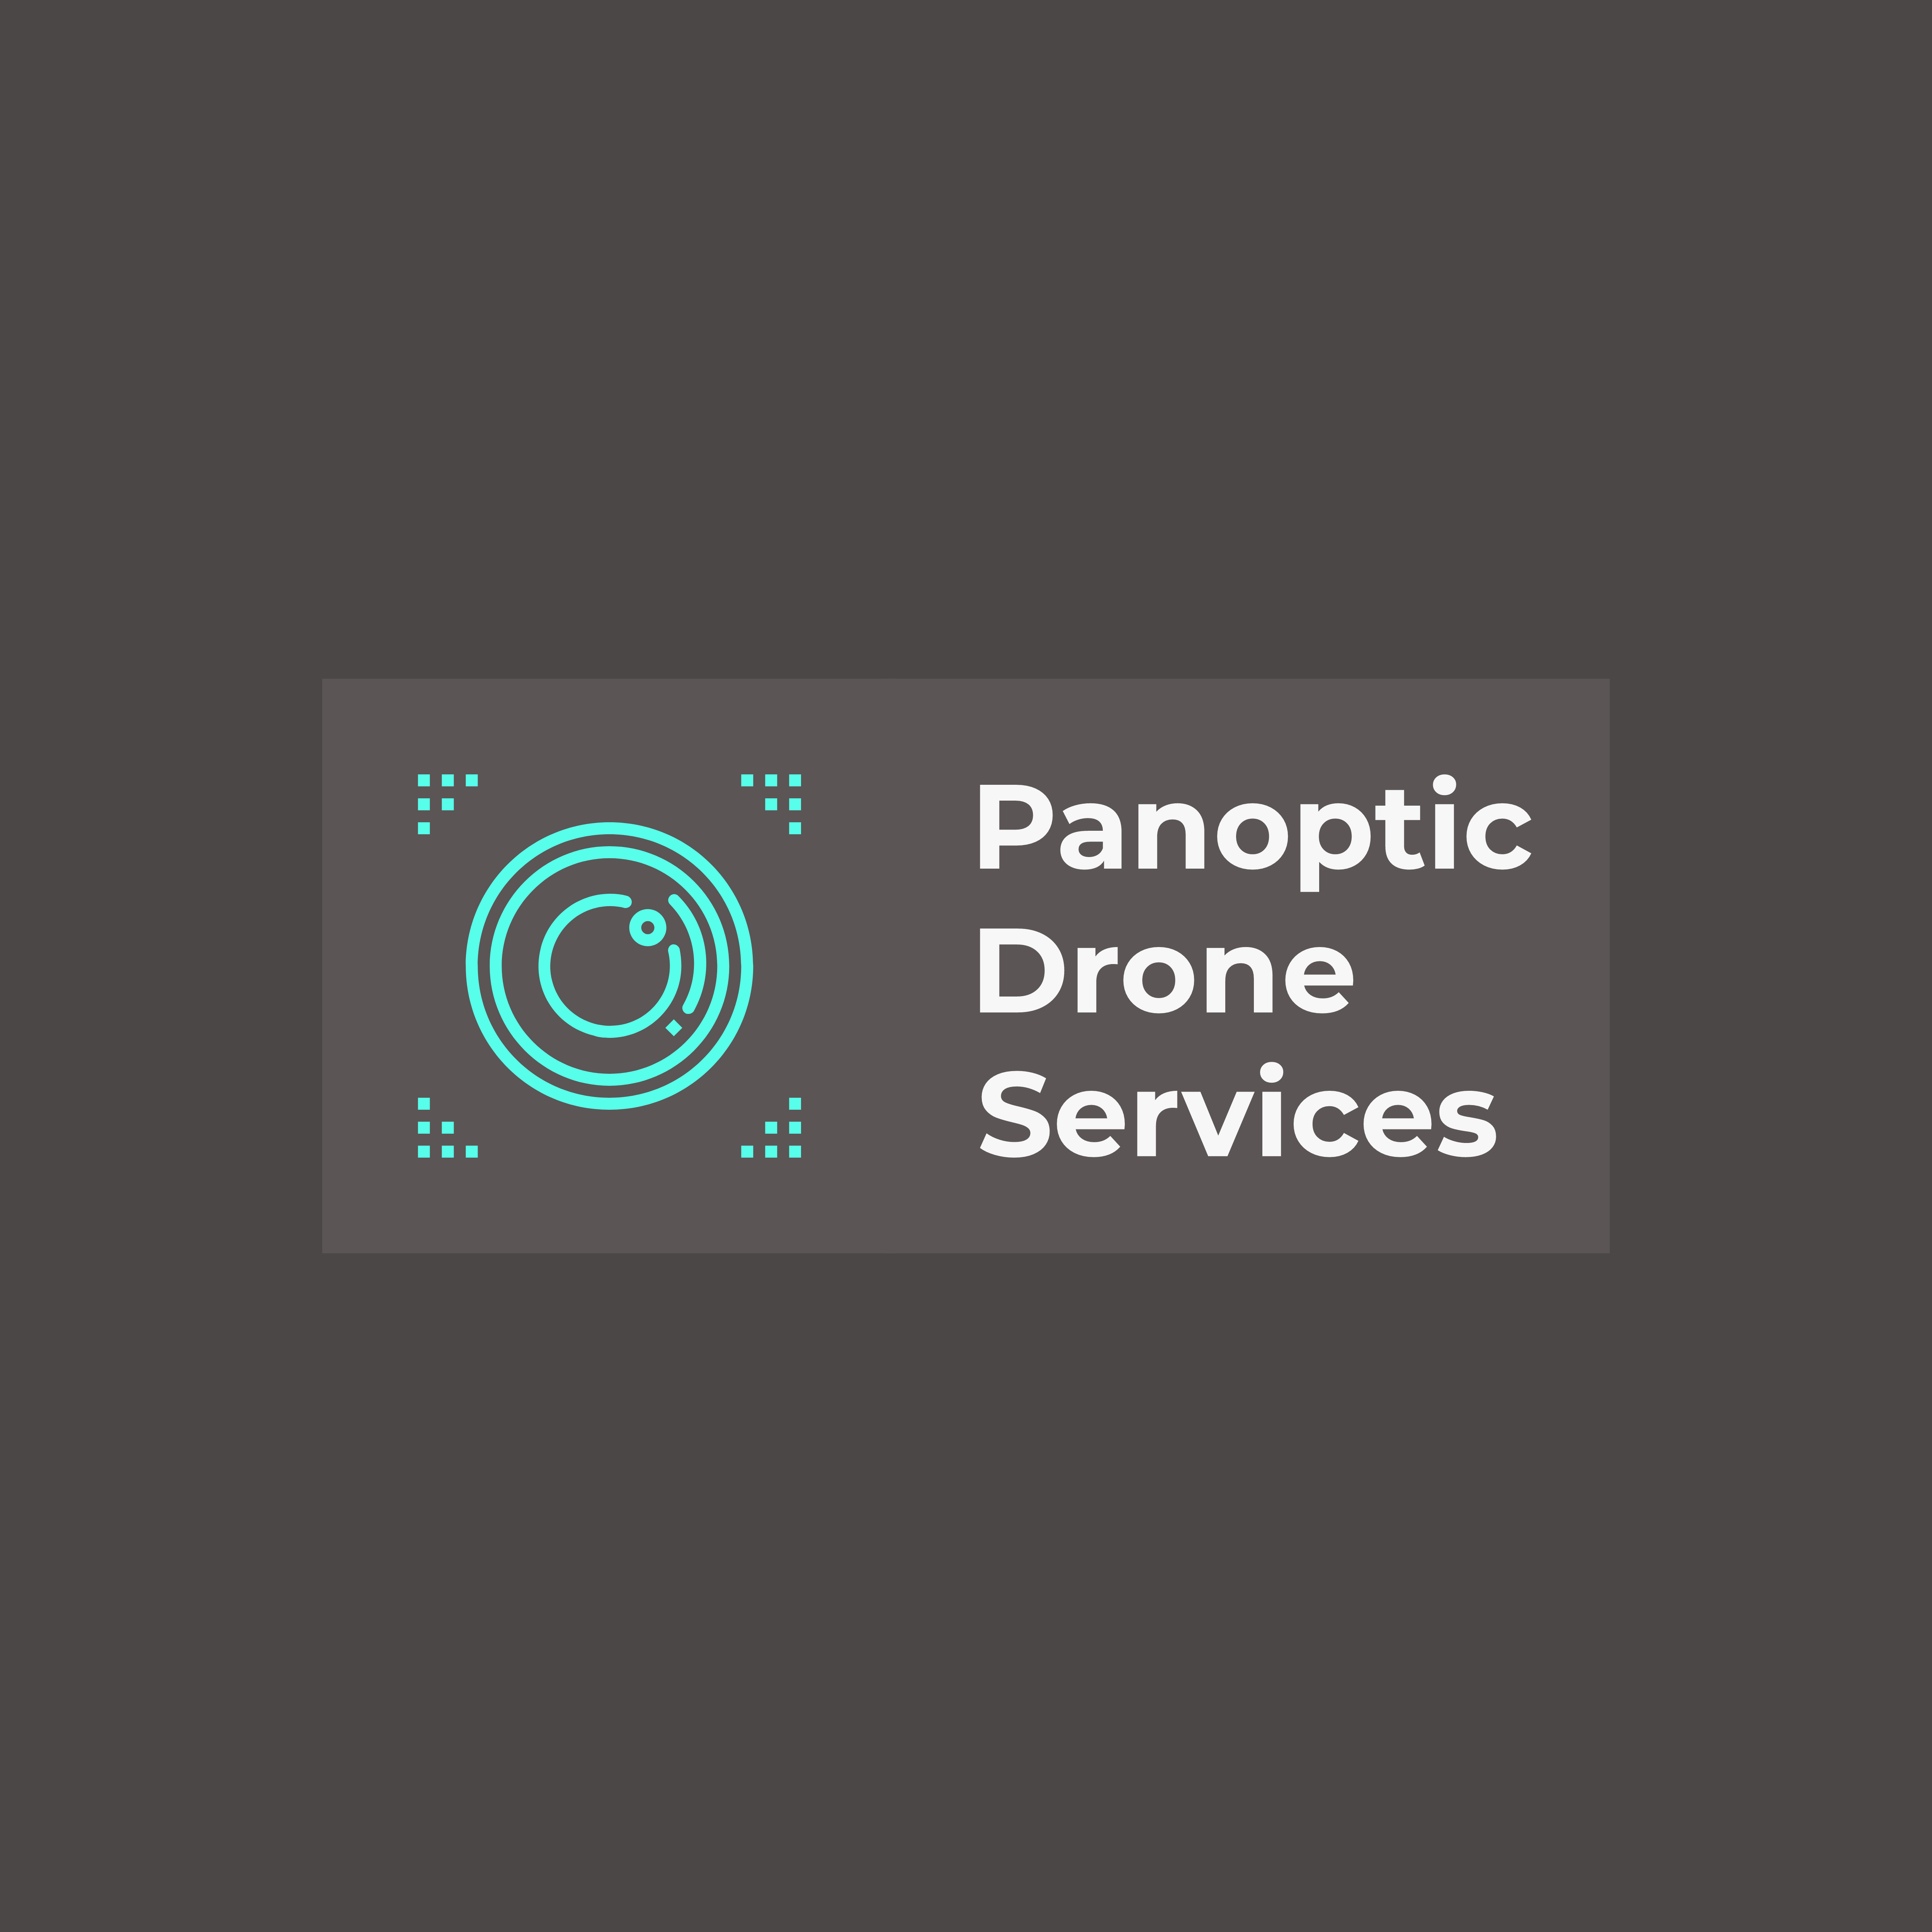 Panoptic Drone Services